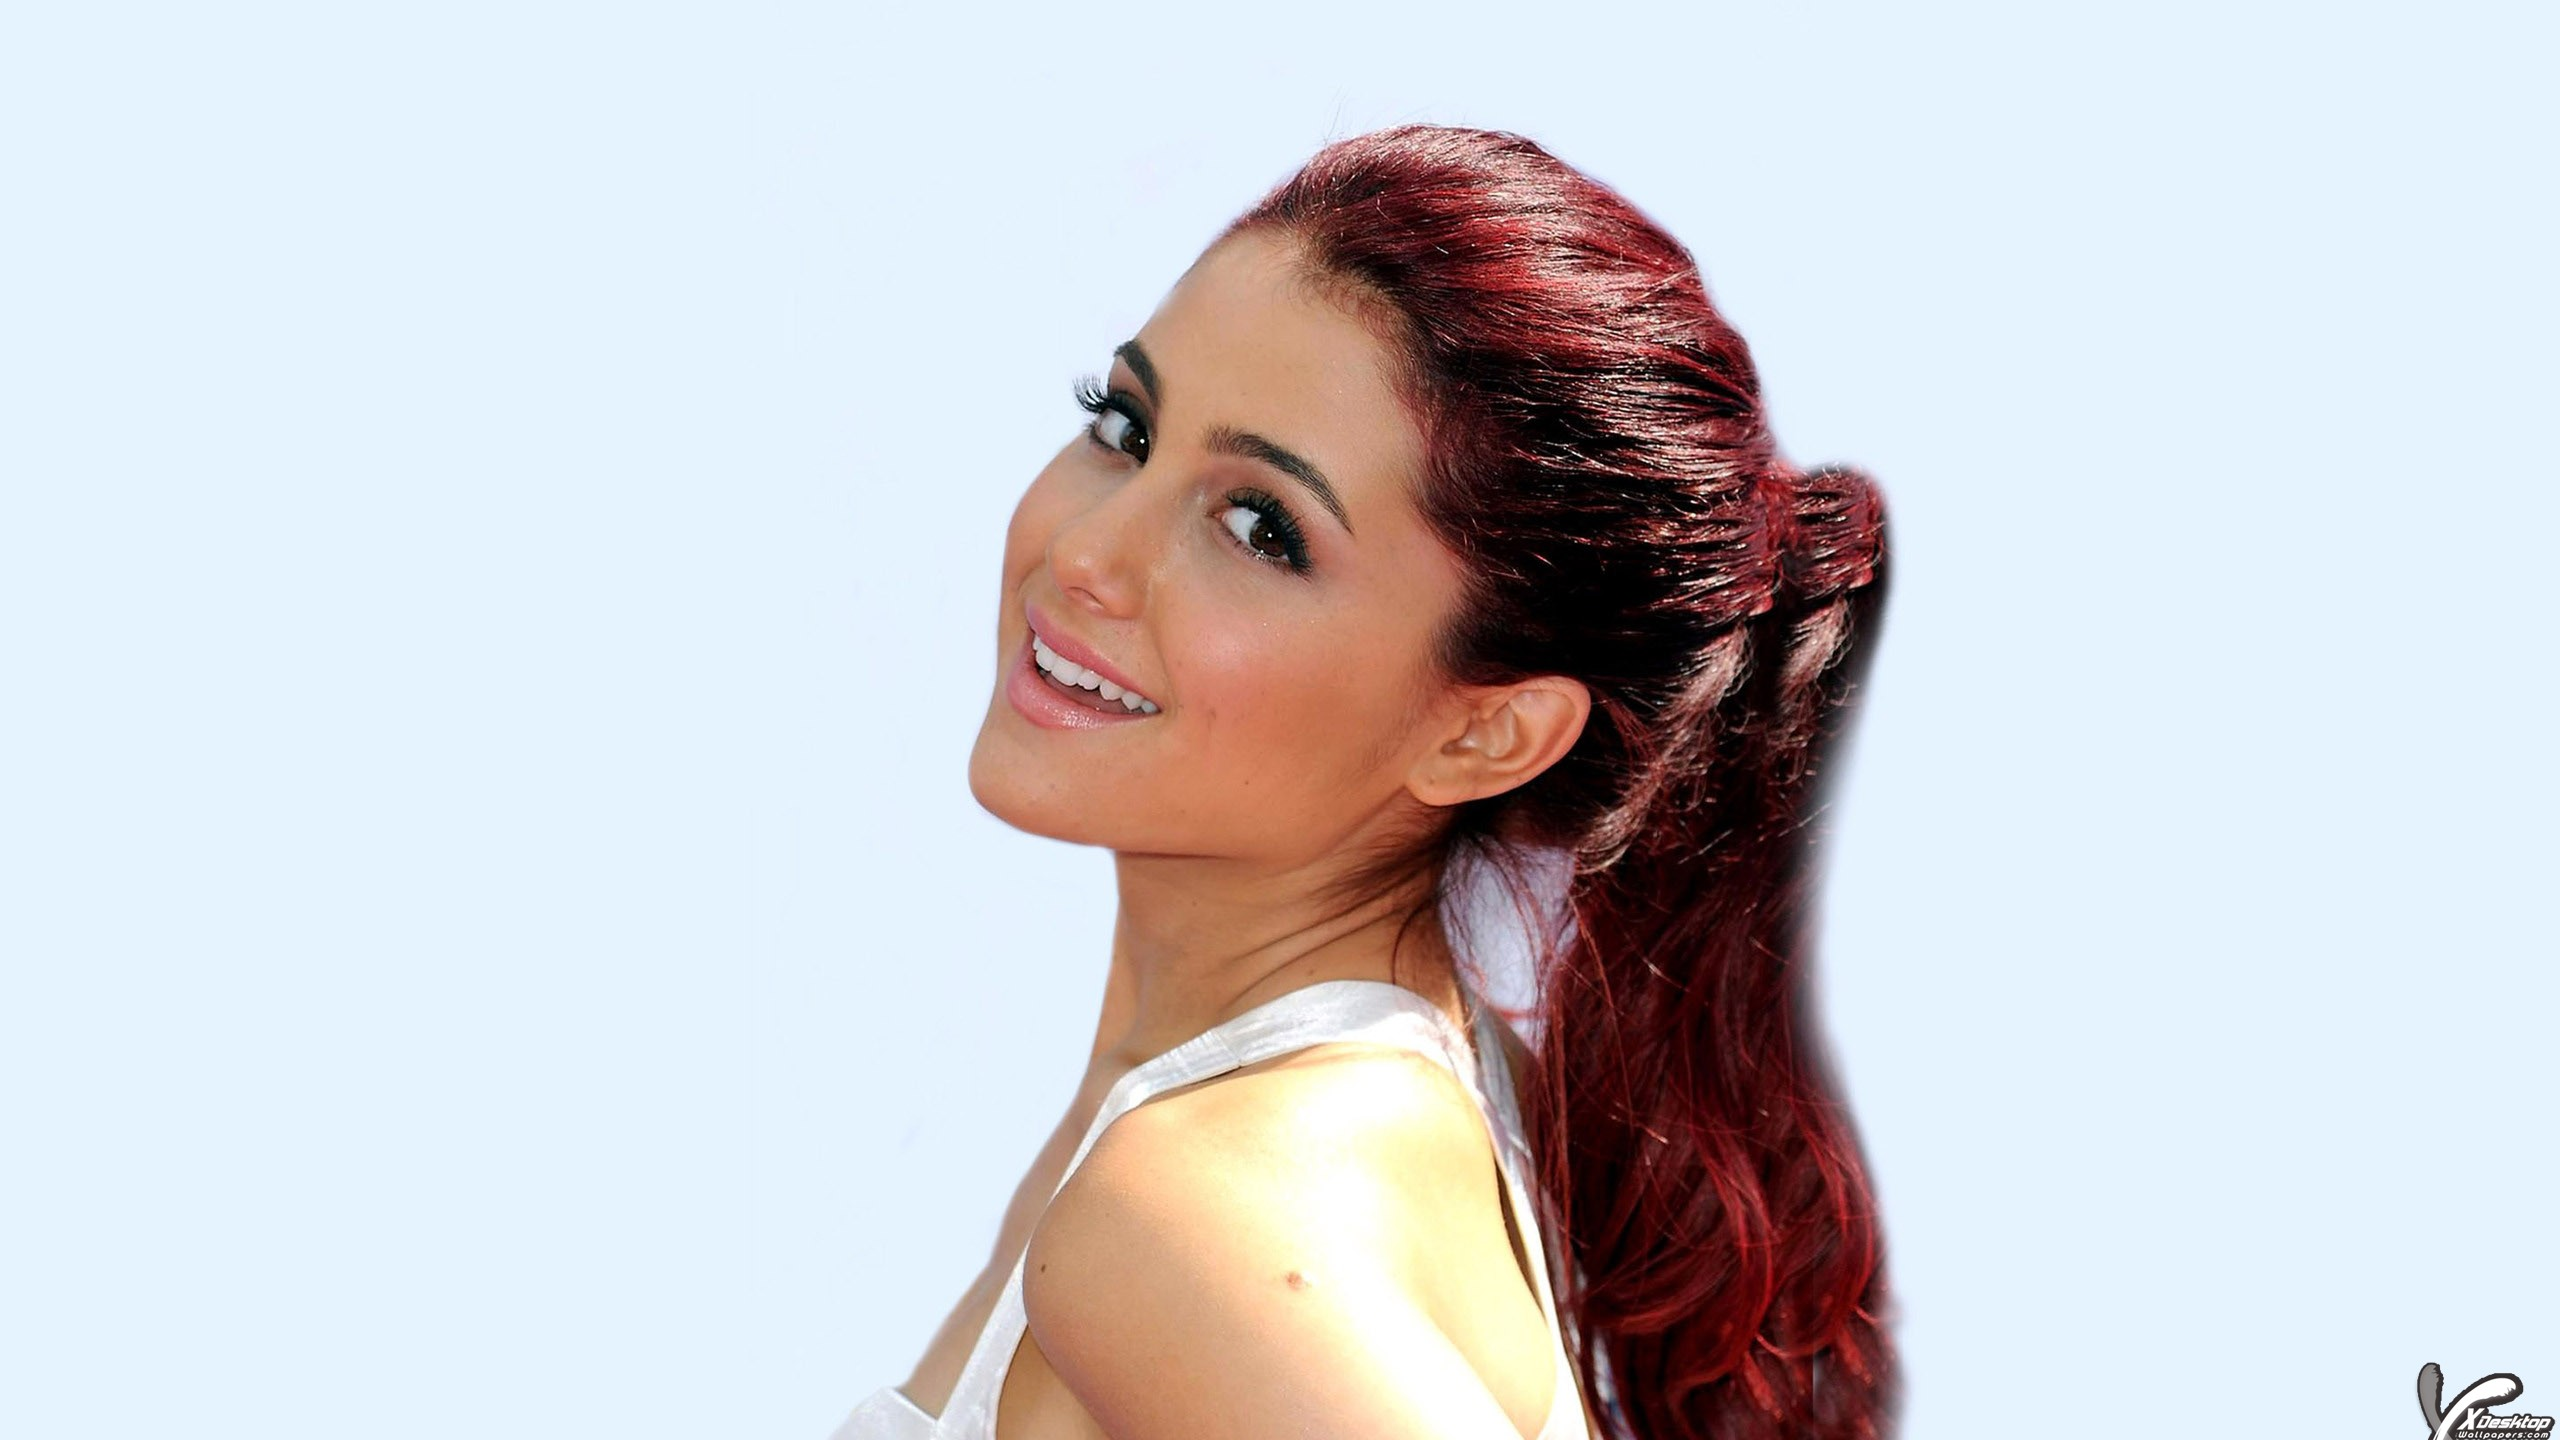 ariana grande wallpapers, photos & images in hd